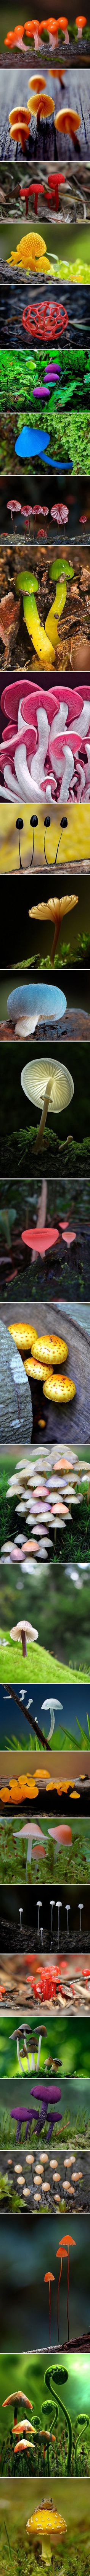 They're technically not plants, but this is an astonishing series of mushrooms!